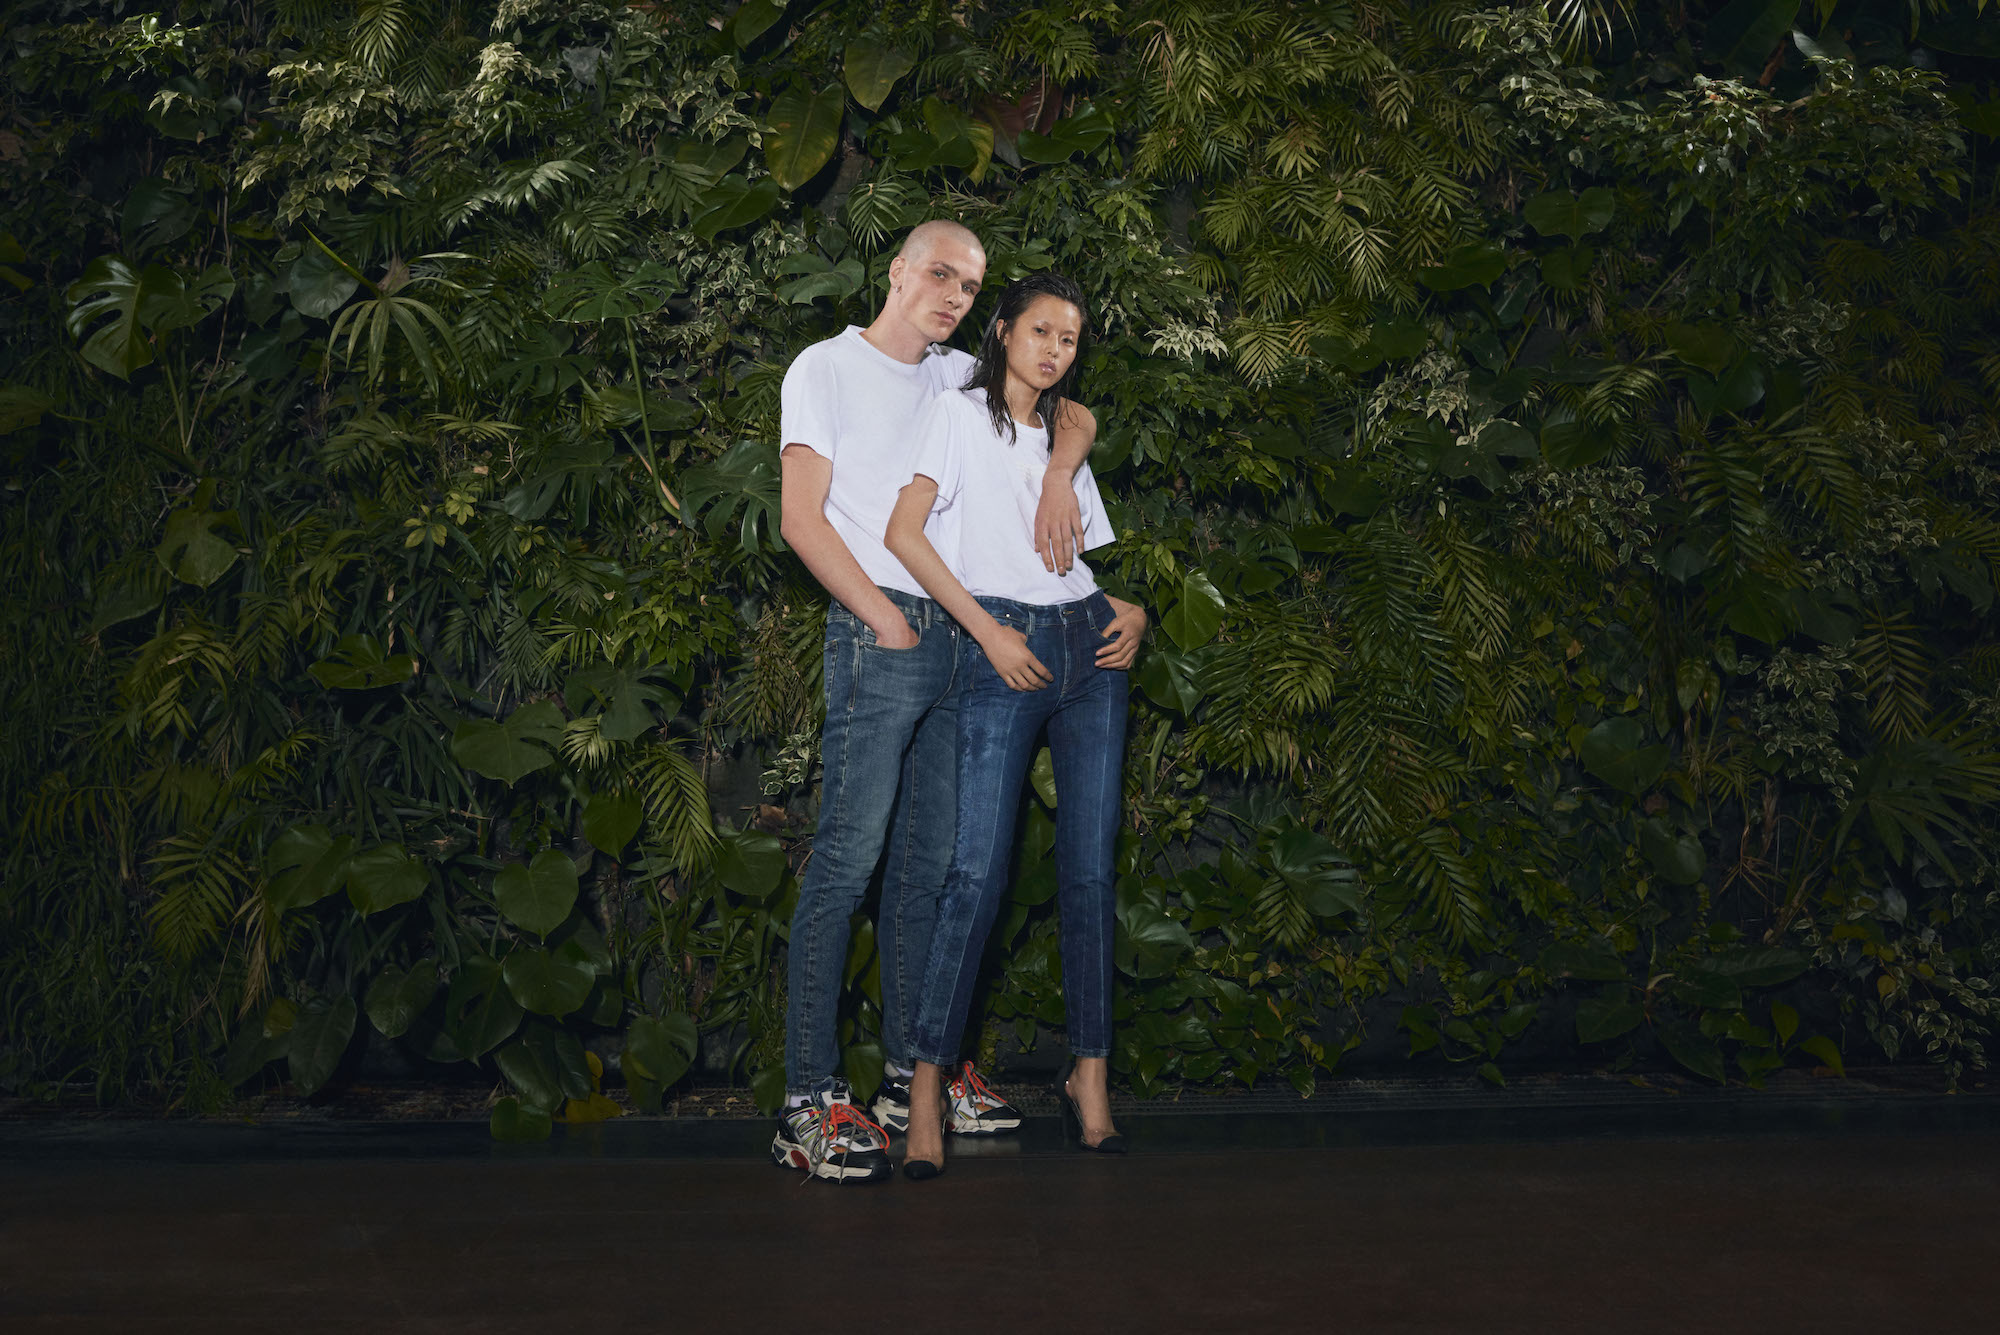 DIESEL INTRODUCES A MORE RESPECTFUL DENIM WITH BRAND'S DNA landscape